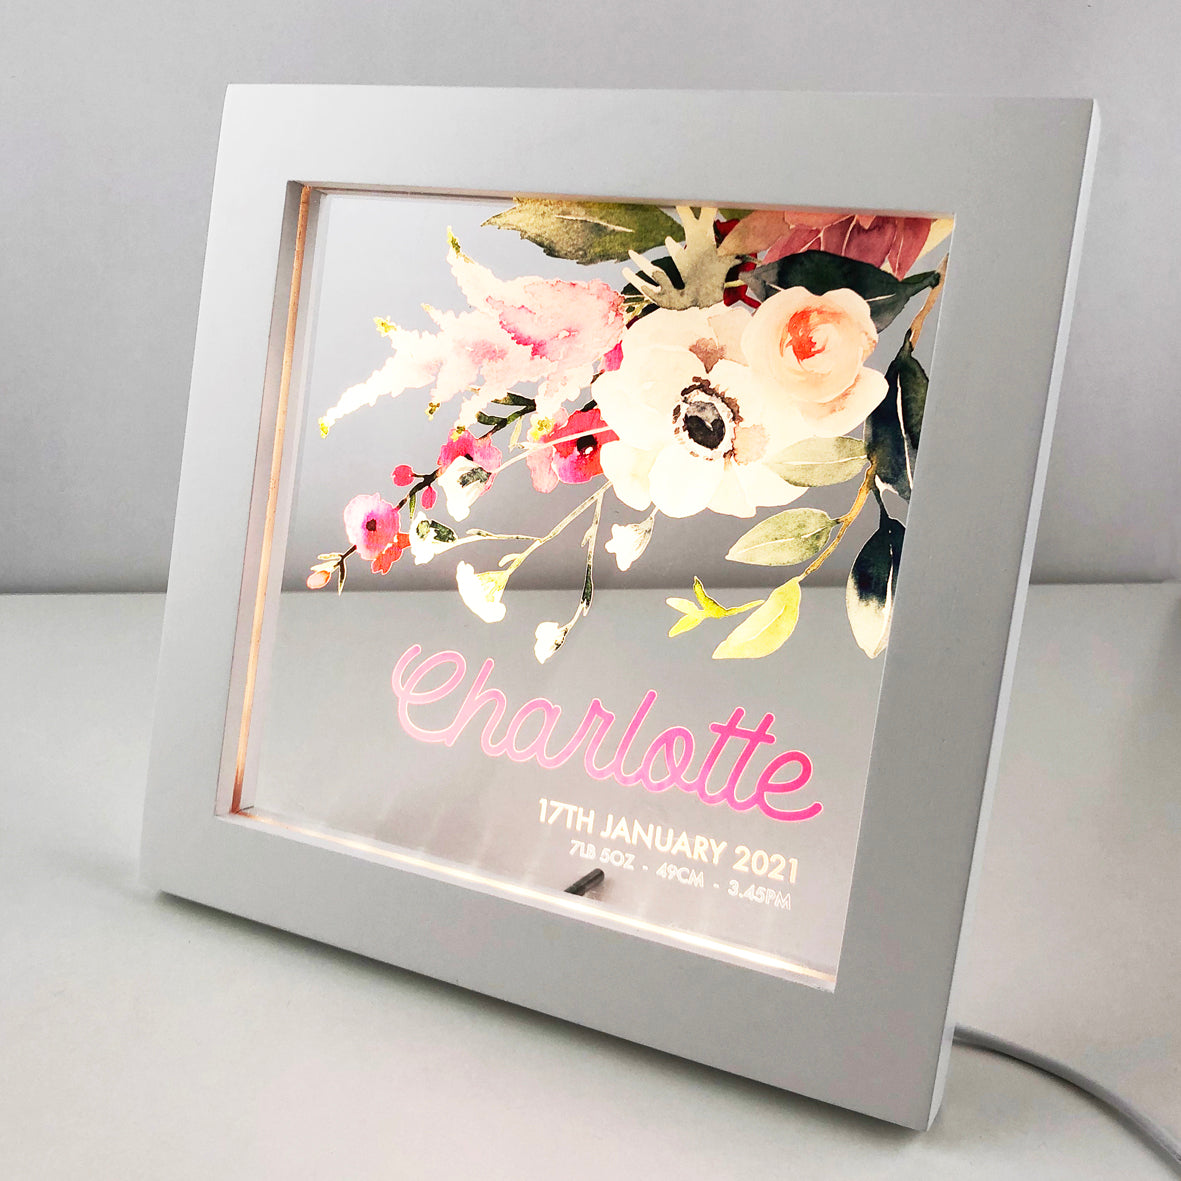 Flower Bouquet Personalised Light Frame